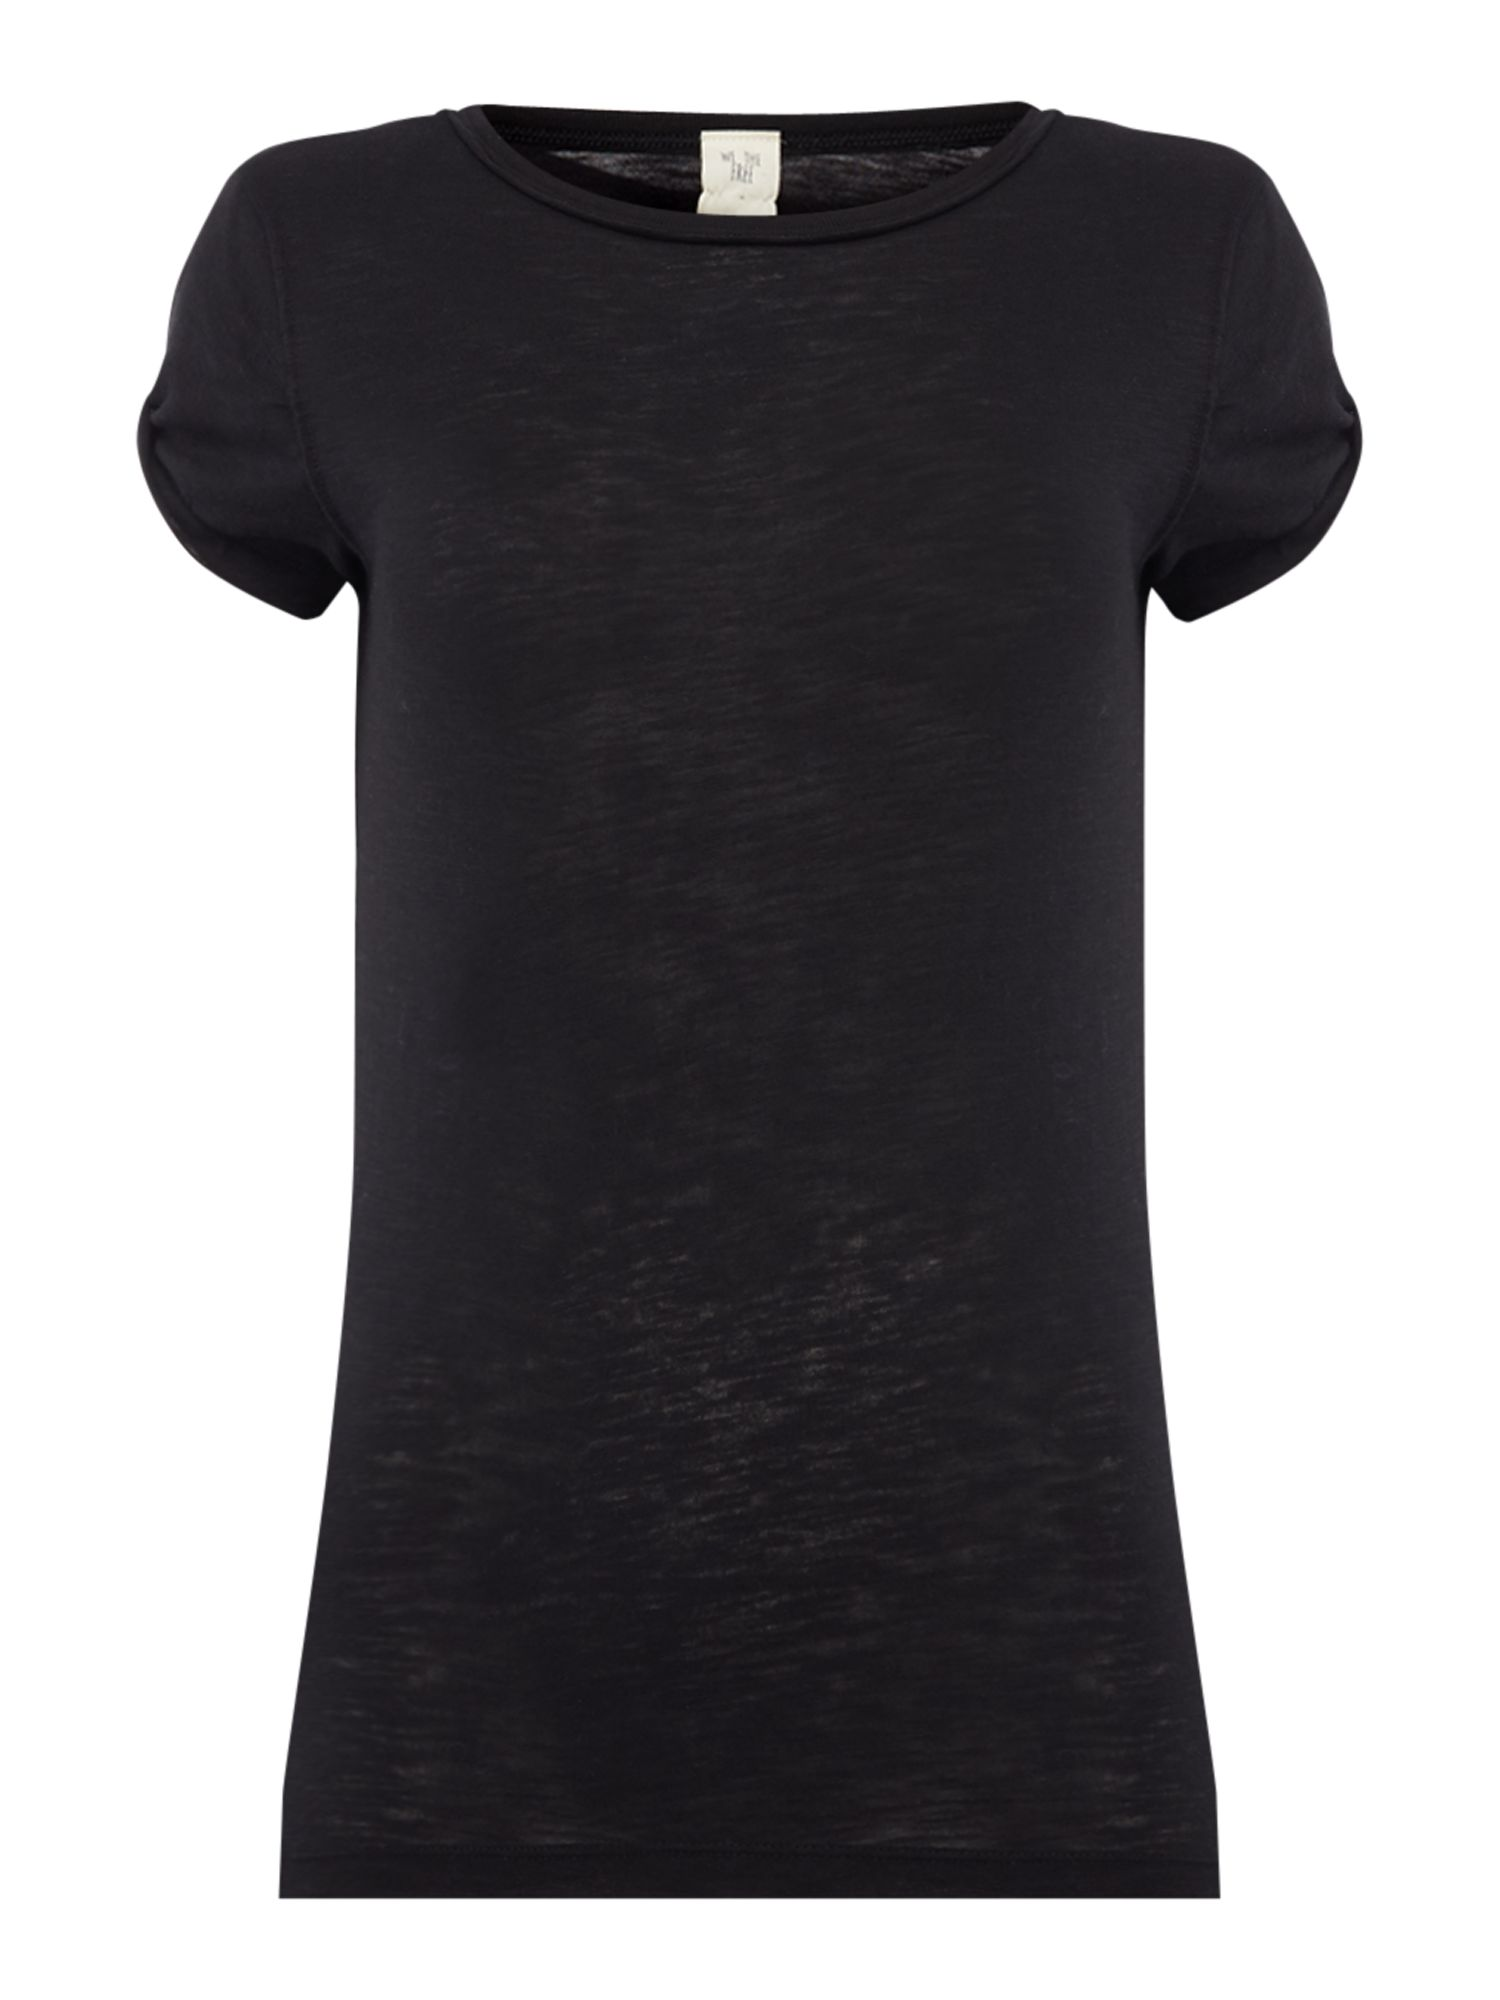 Free People Clare Round Neck Short Sleeve Tee, Black